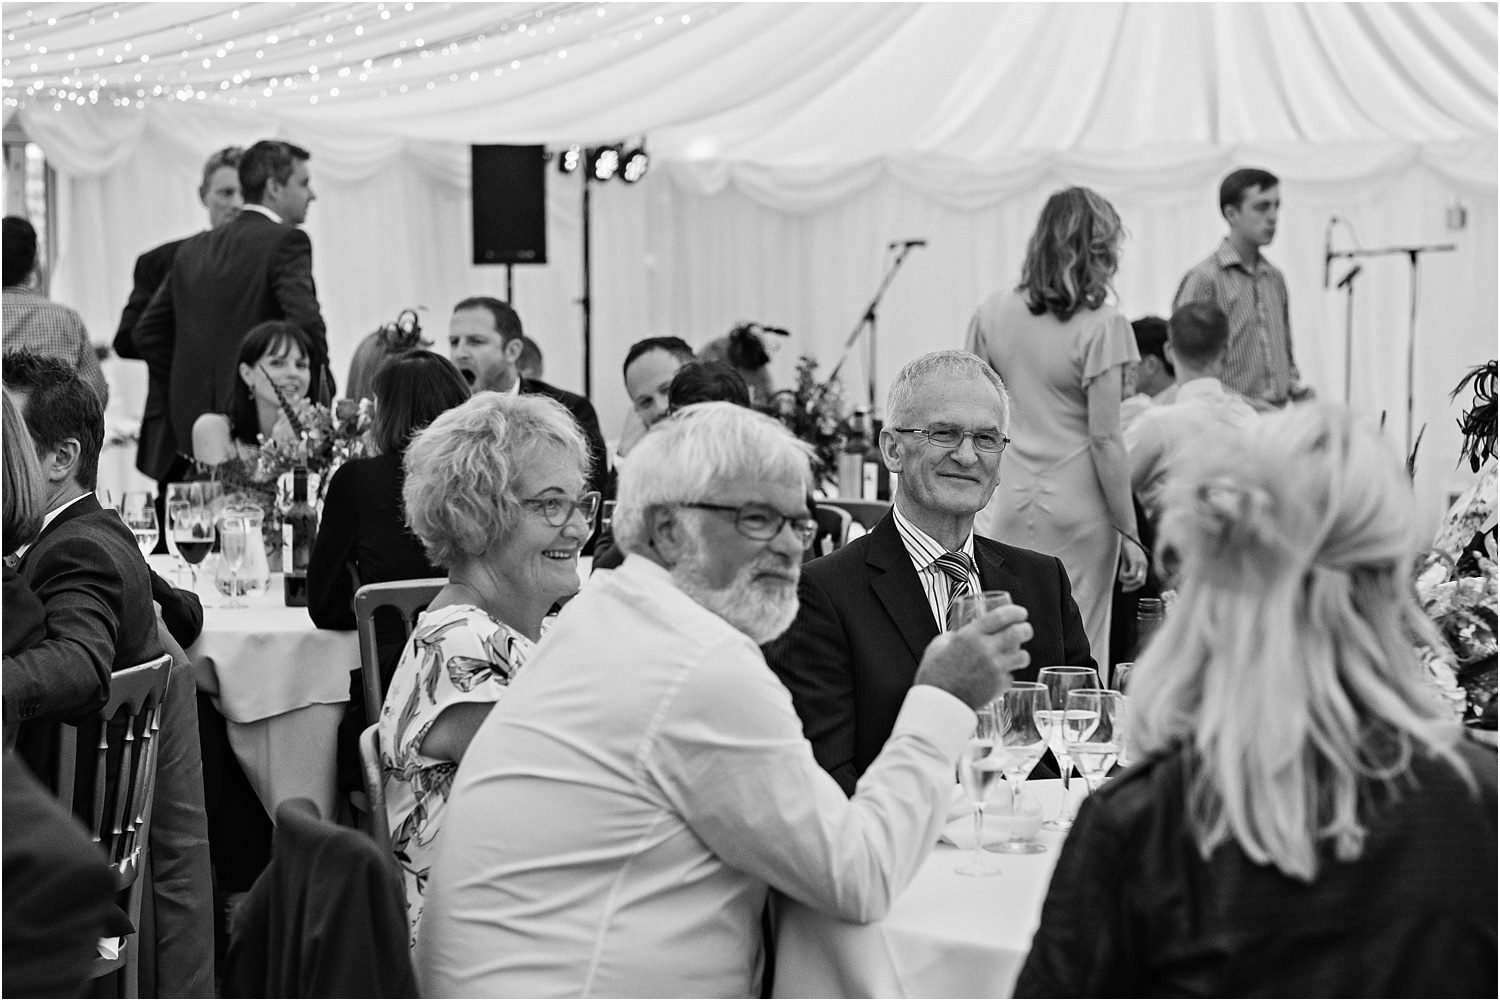 Wedding guests enjoying the reception at Lancashire wedding venue, The Inn at Whitewell